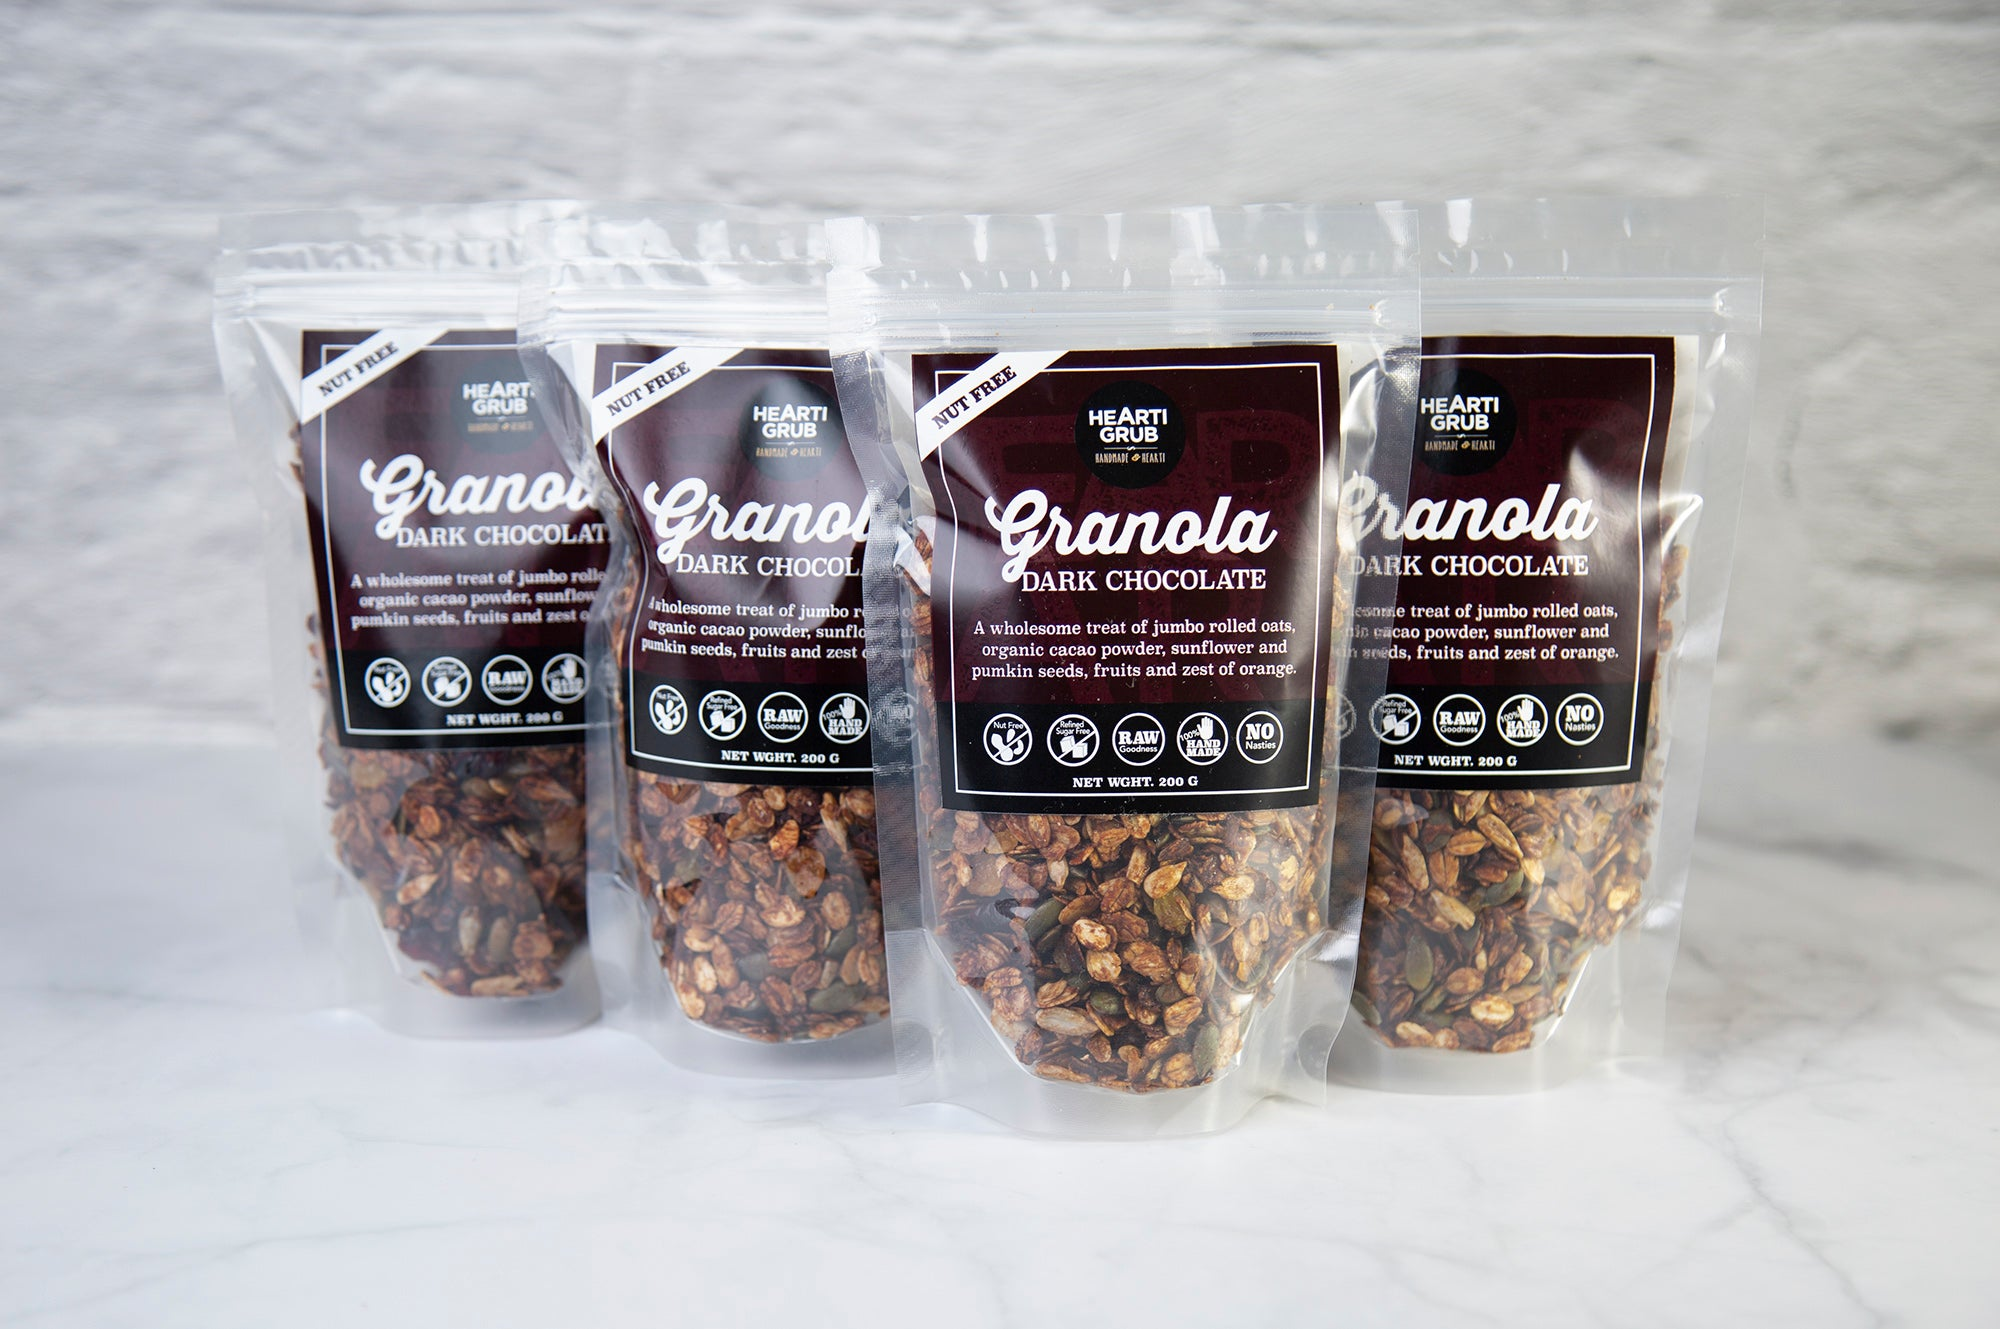 NO NUT DARK CHOCOLATE GRANOLA